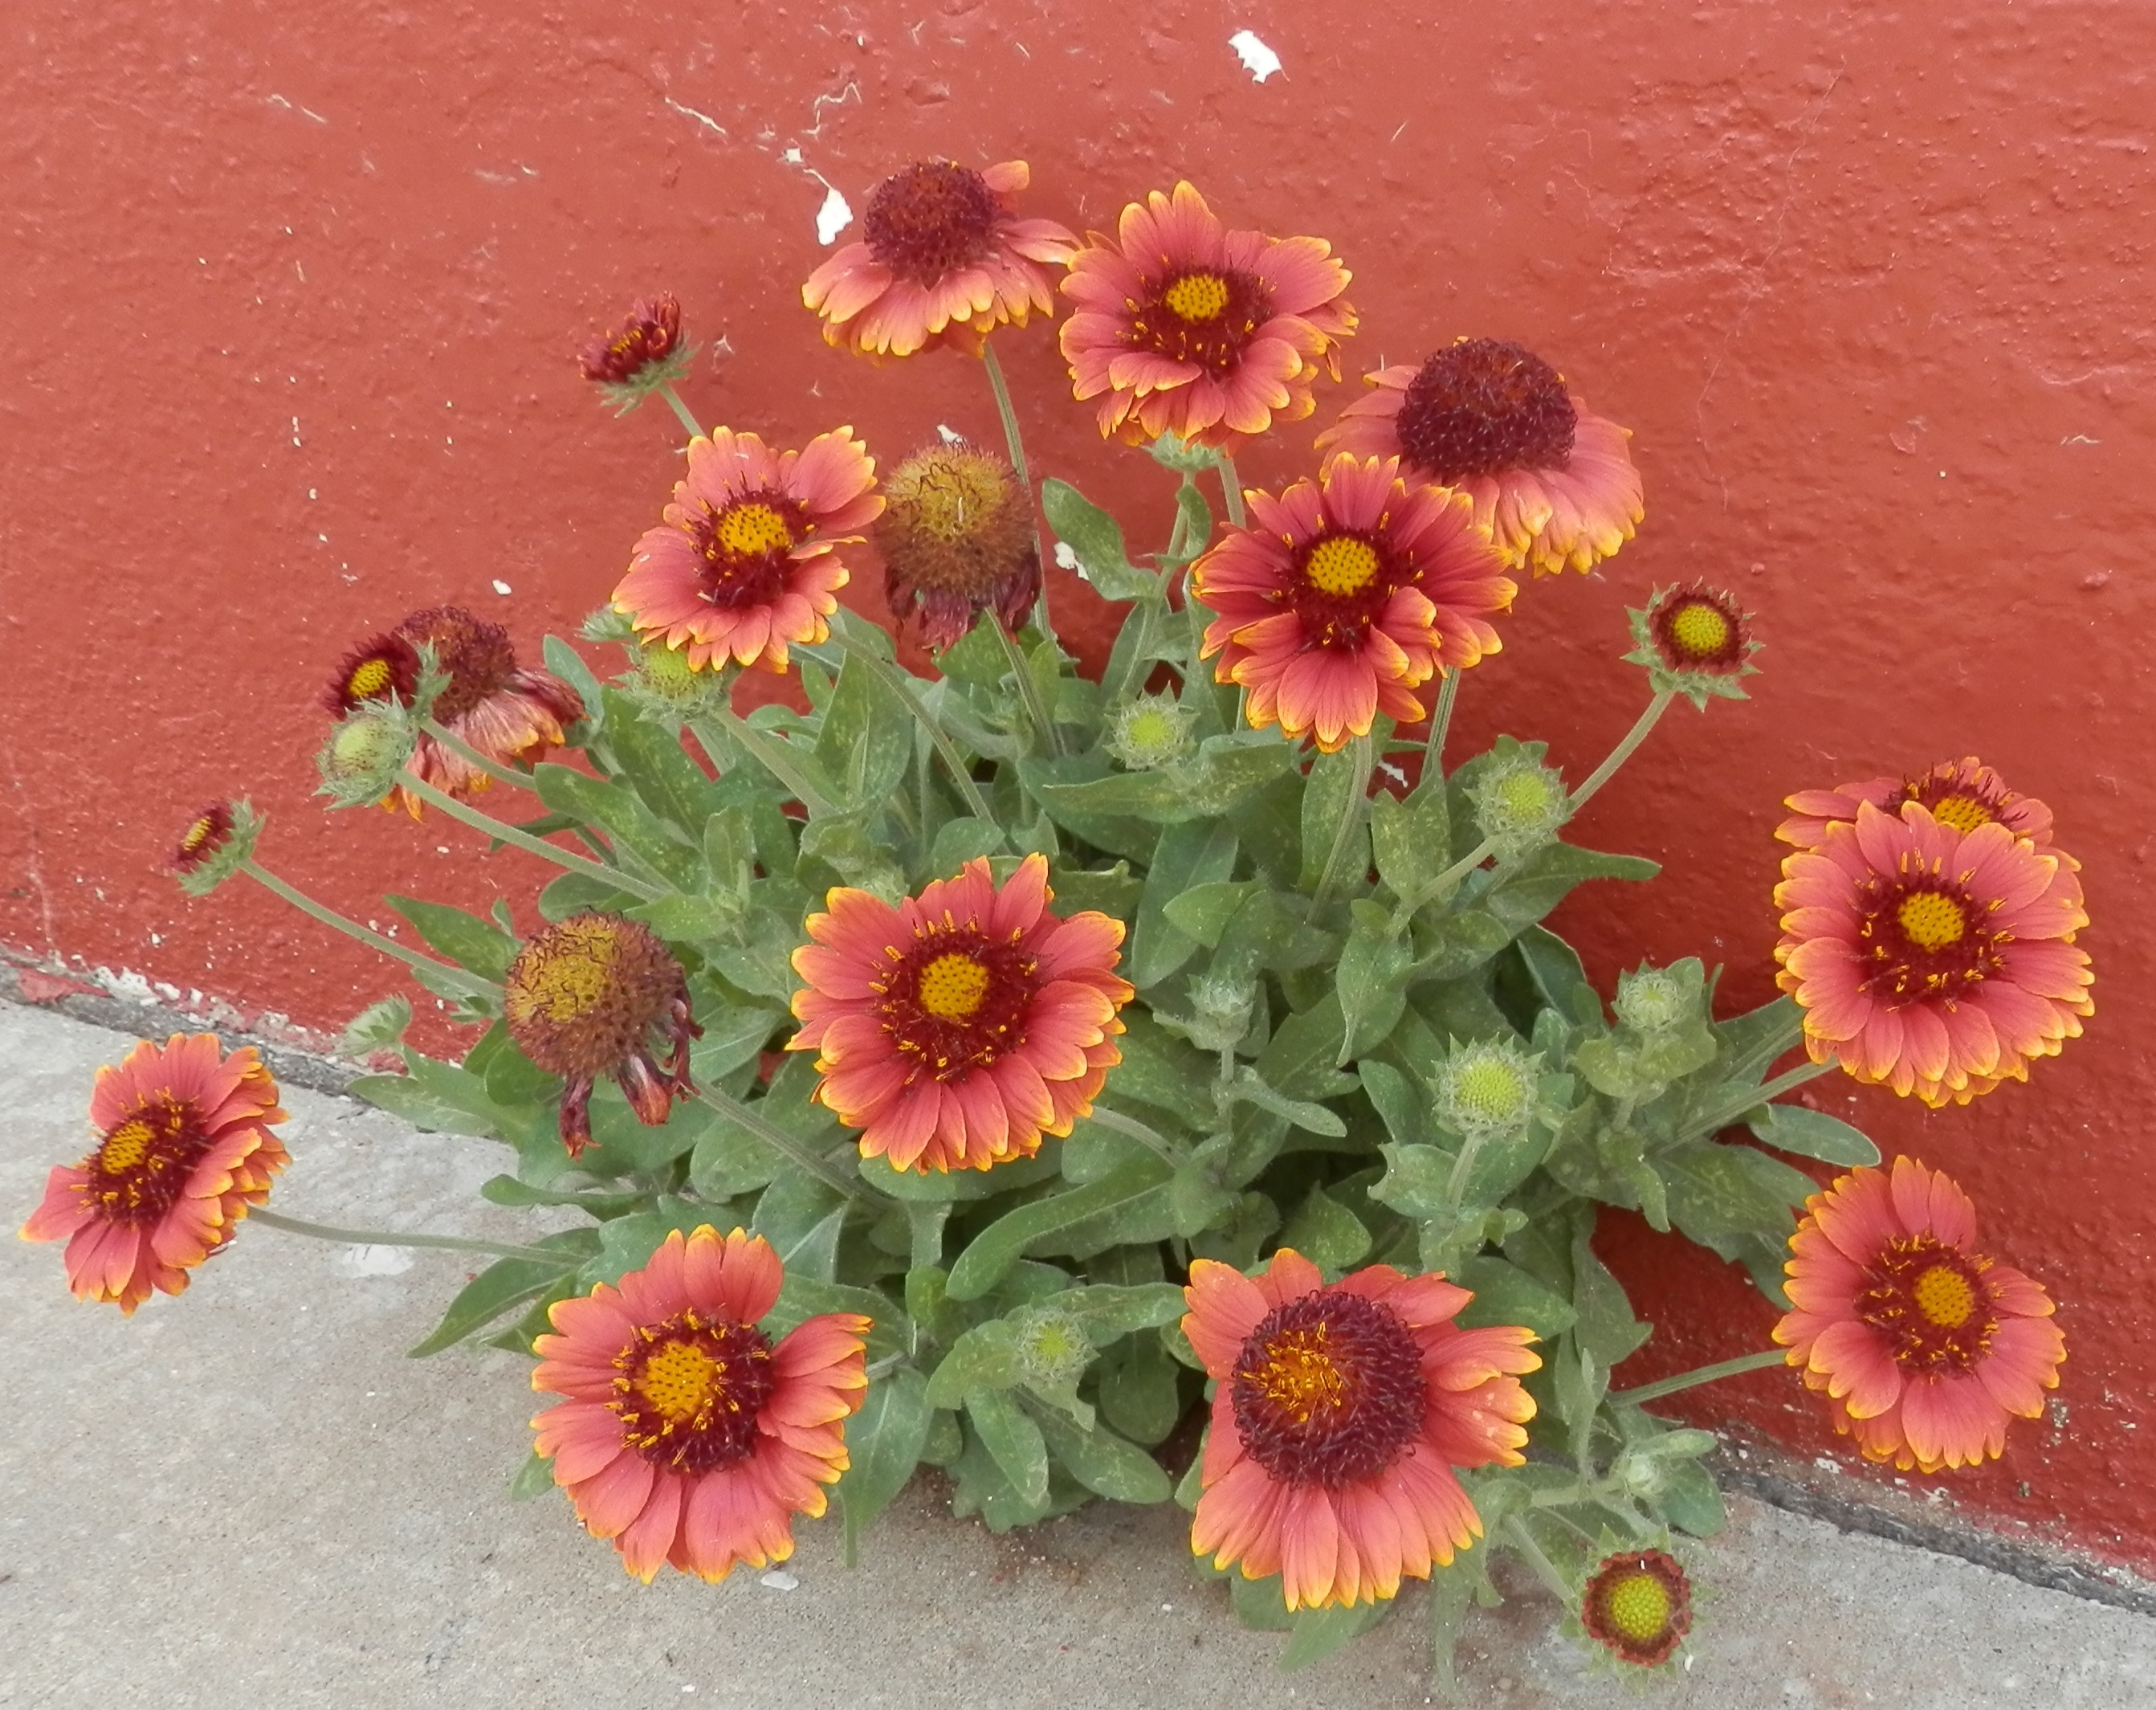 Indian Blanket flower growing beautifully in a crack